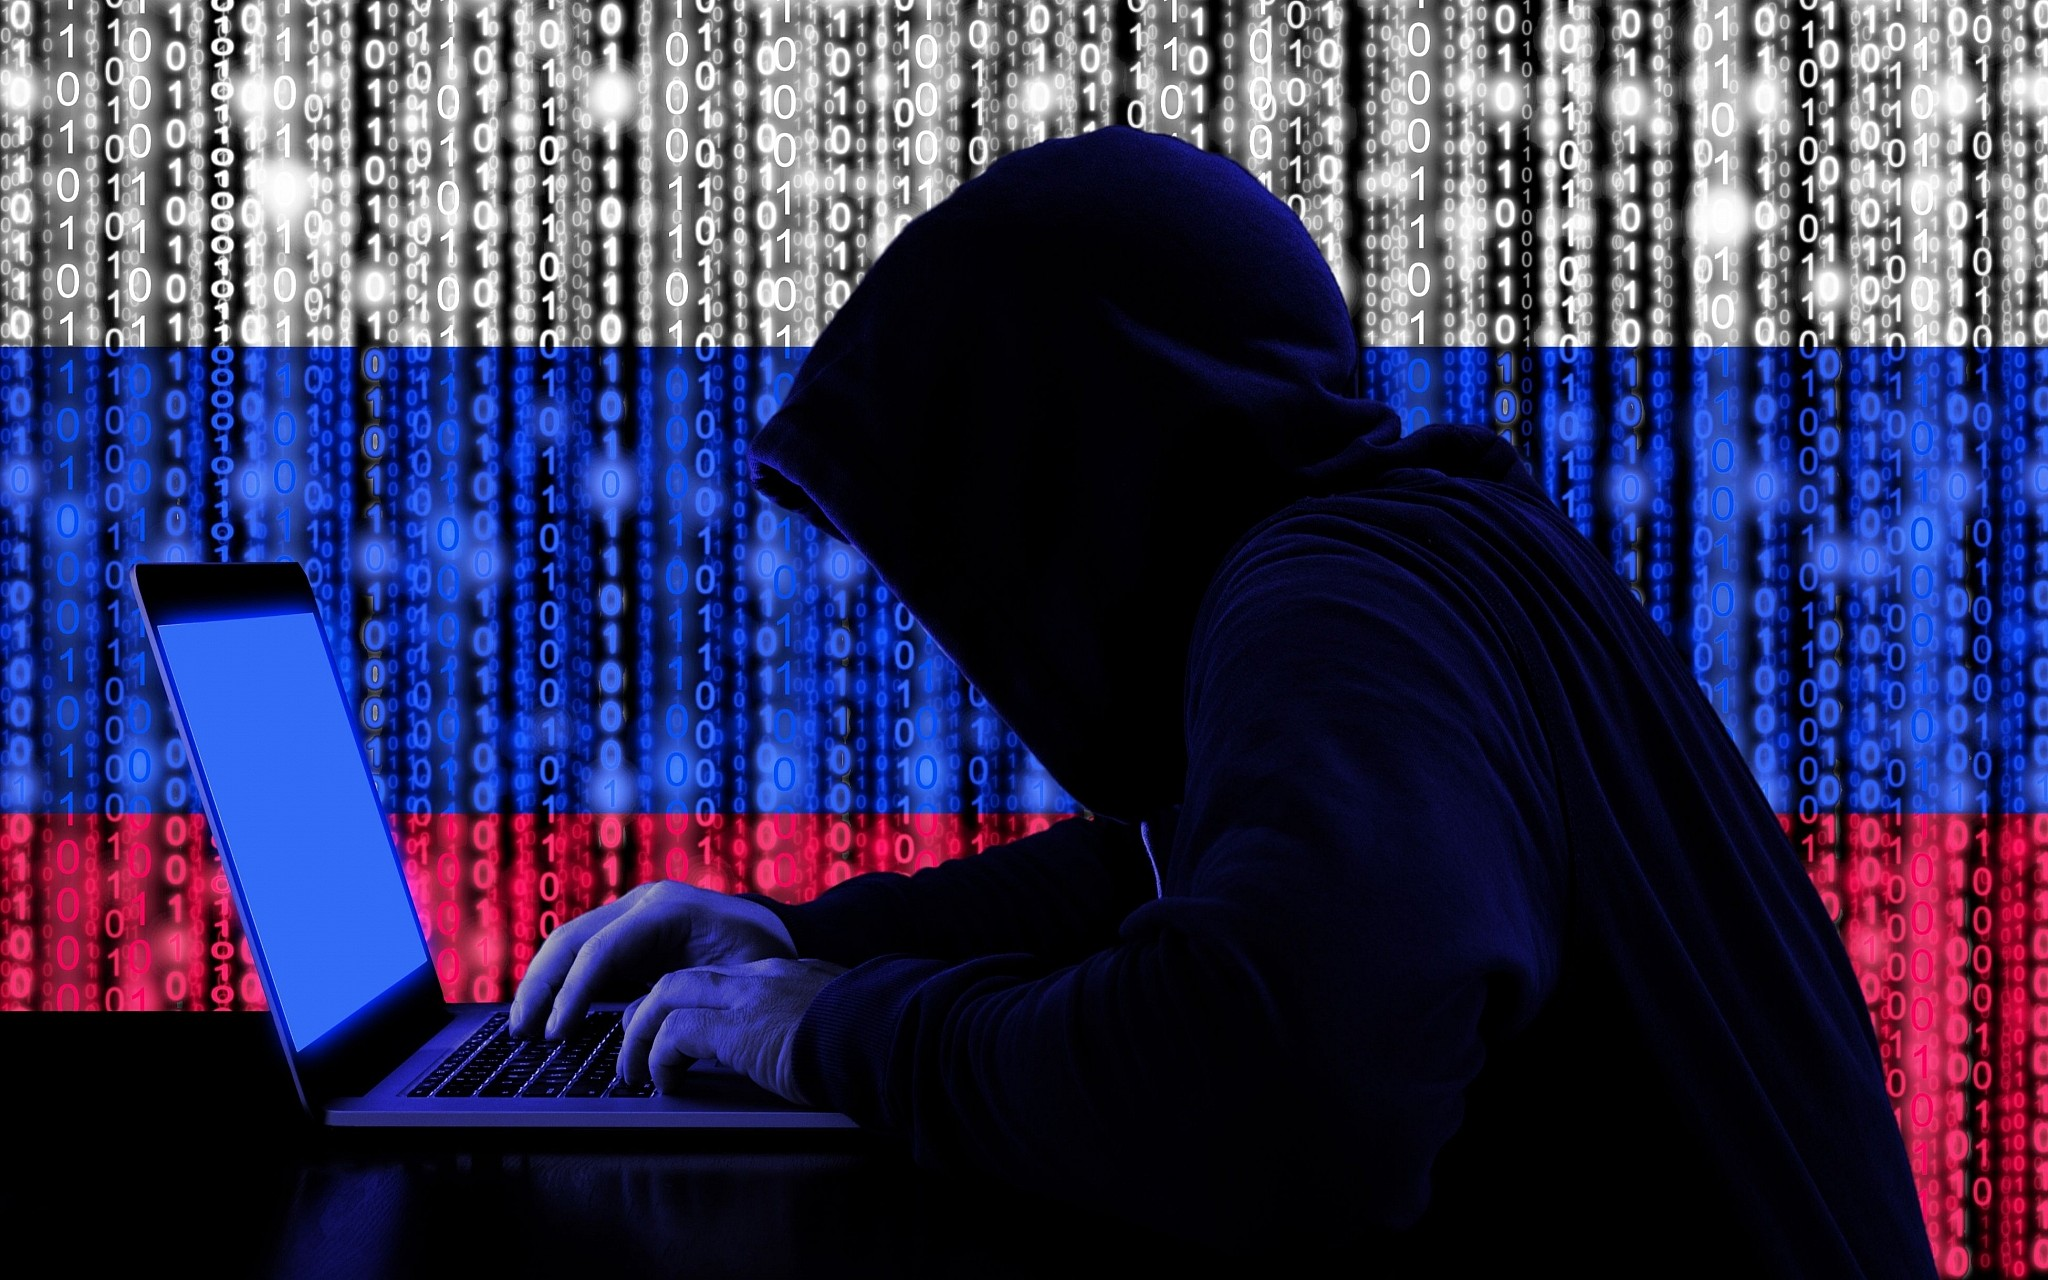 Israel Wins Second Largest Number Of Cybersecurity Deals Globally Daily Cyber Security News Illustrative A Hacker In Action Beebright Istock By Getty Images